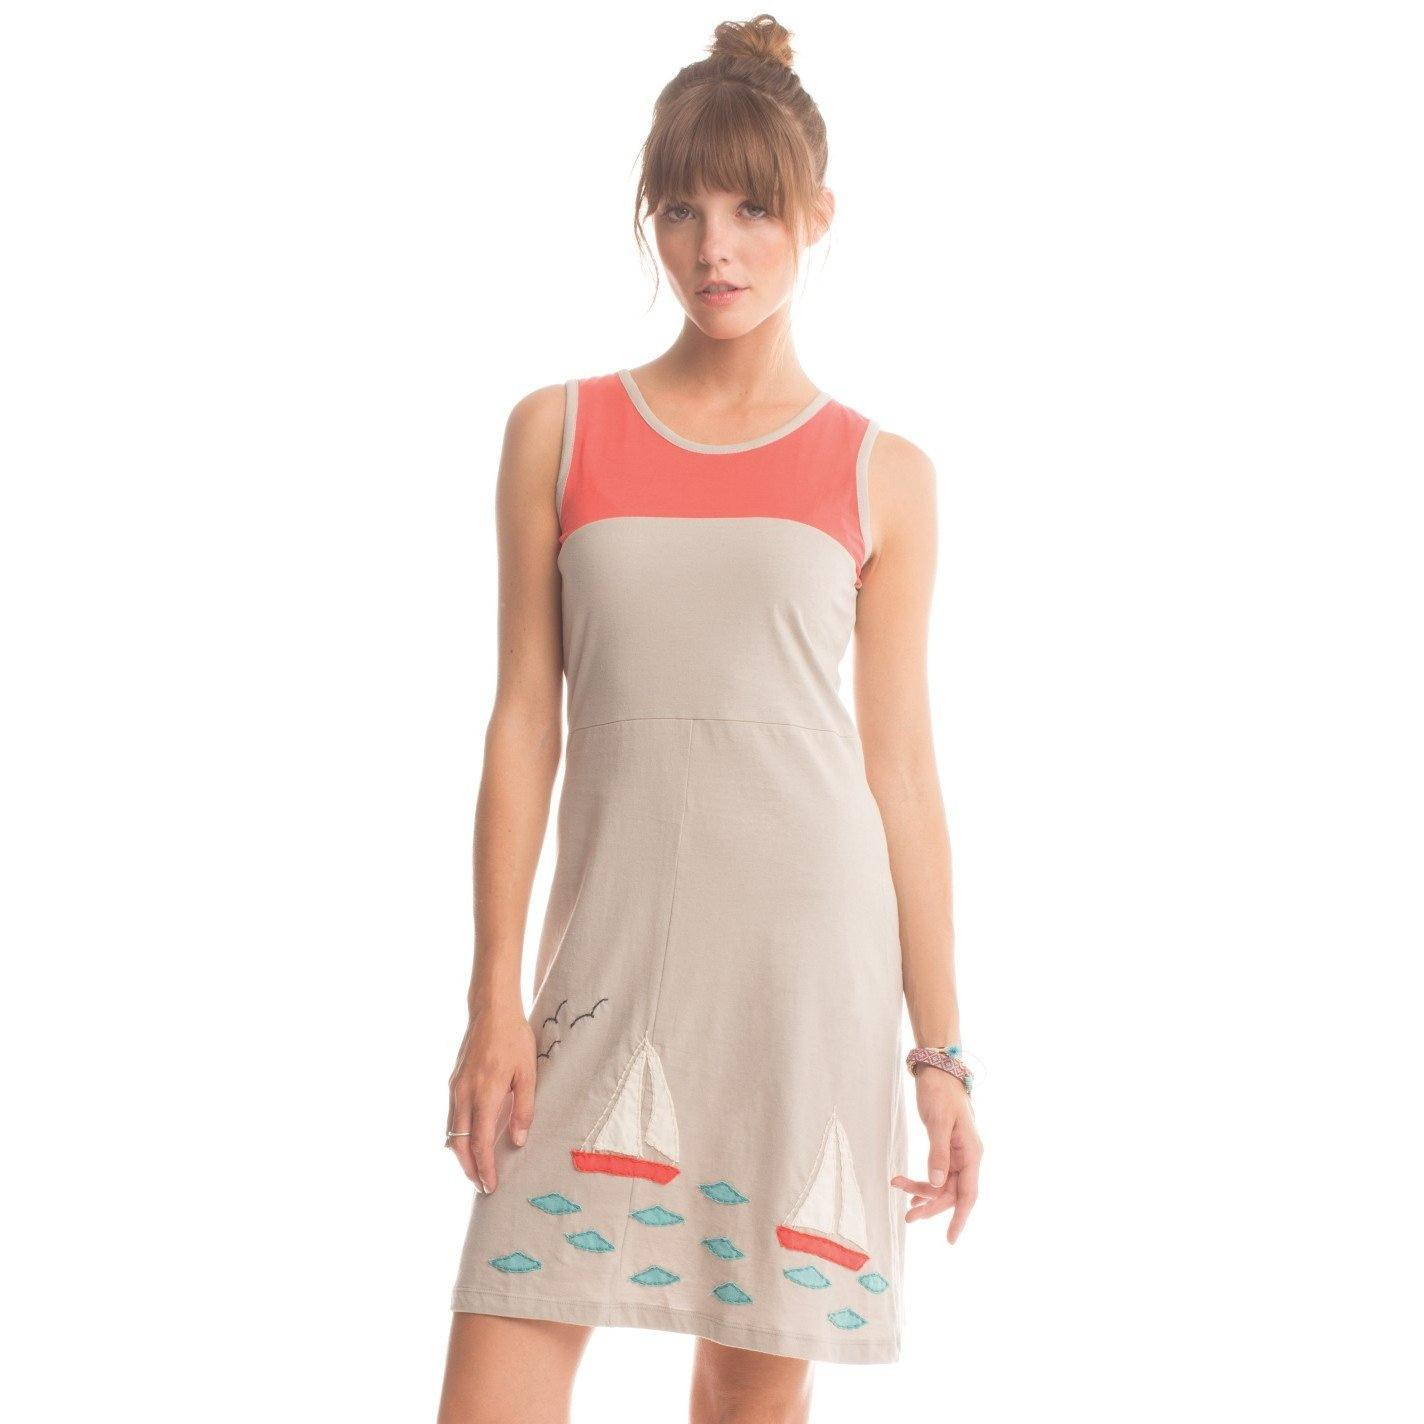 Synergy Organic Clothing Sailboat Applique Beatrice Dress - Robinsons Nest - 3